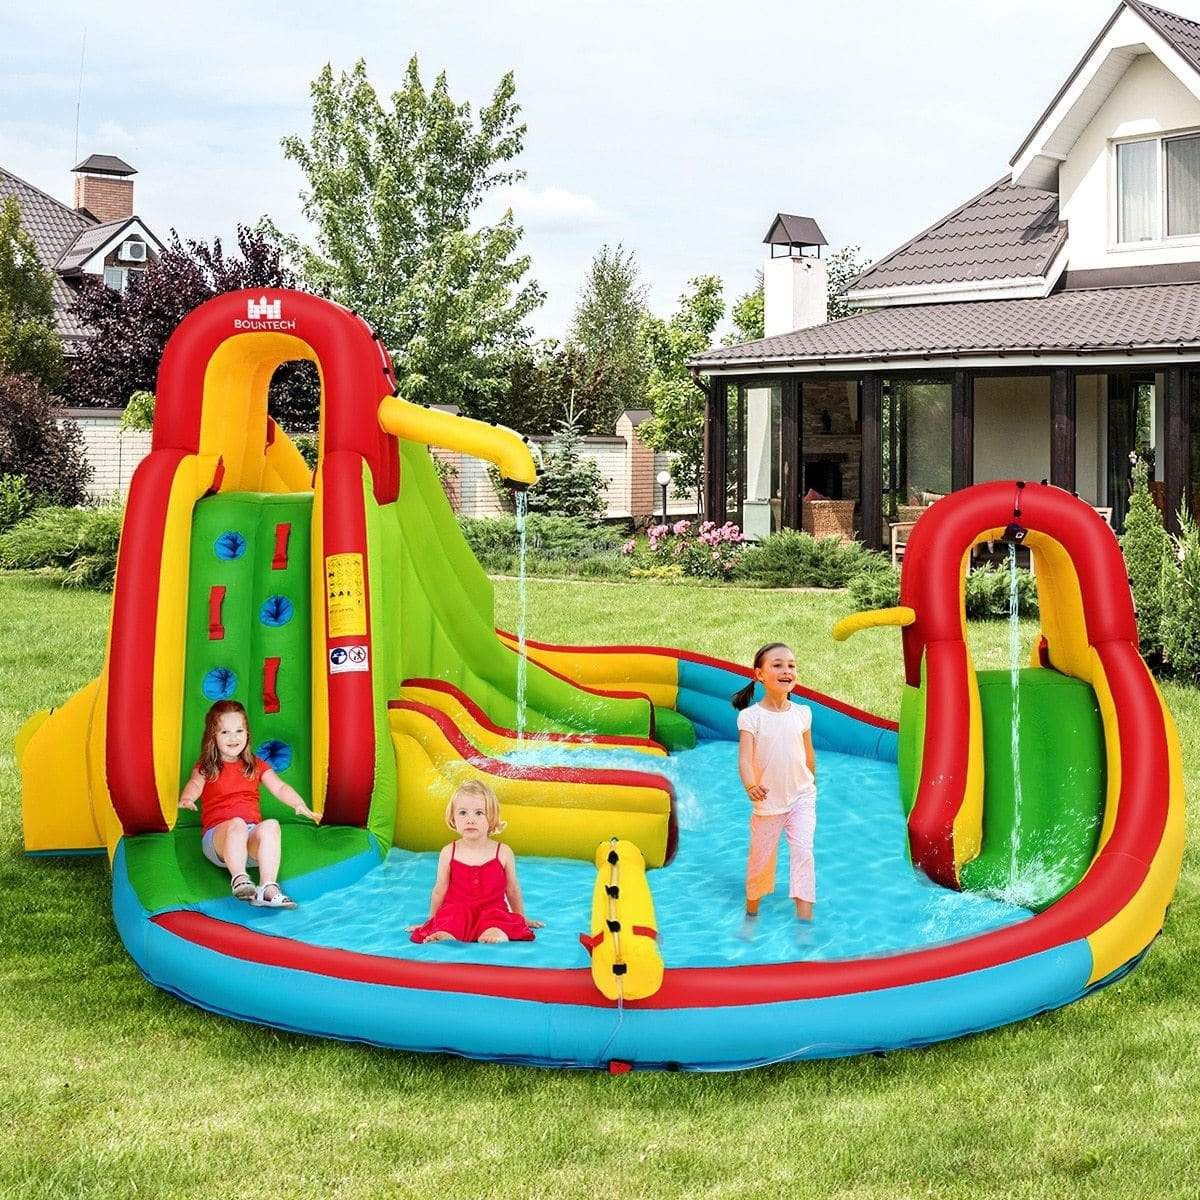 Kids Inflatable Water Slide Bounce Park Splash Pool w/Water Cannon & 680W Blower